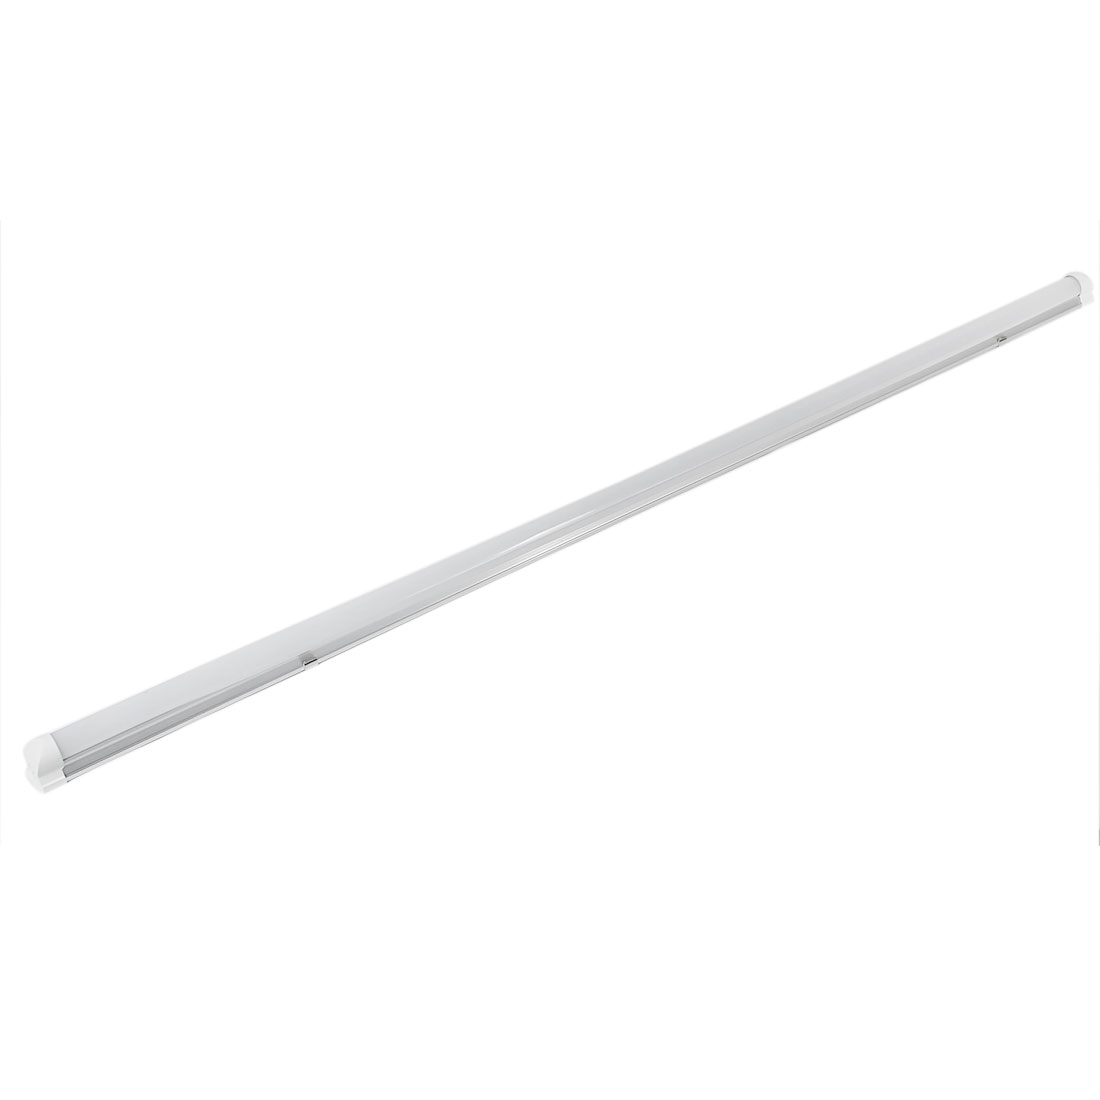 House White Light Lamp Bulb T8 LED Tube 1.2M 18W 5900-6500K AC 85V-265V w Holder